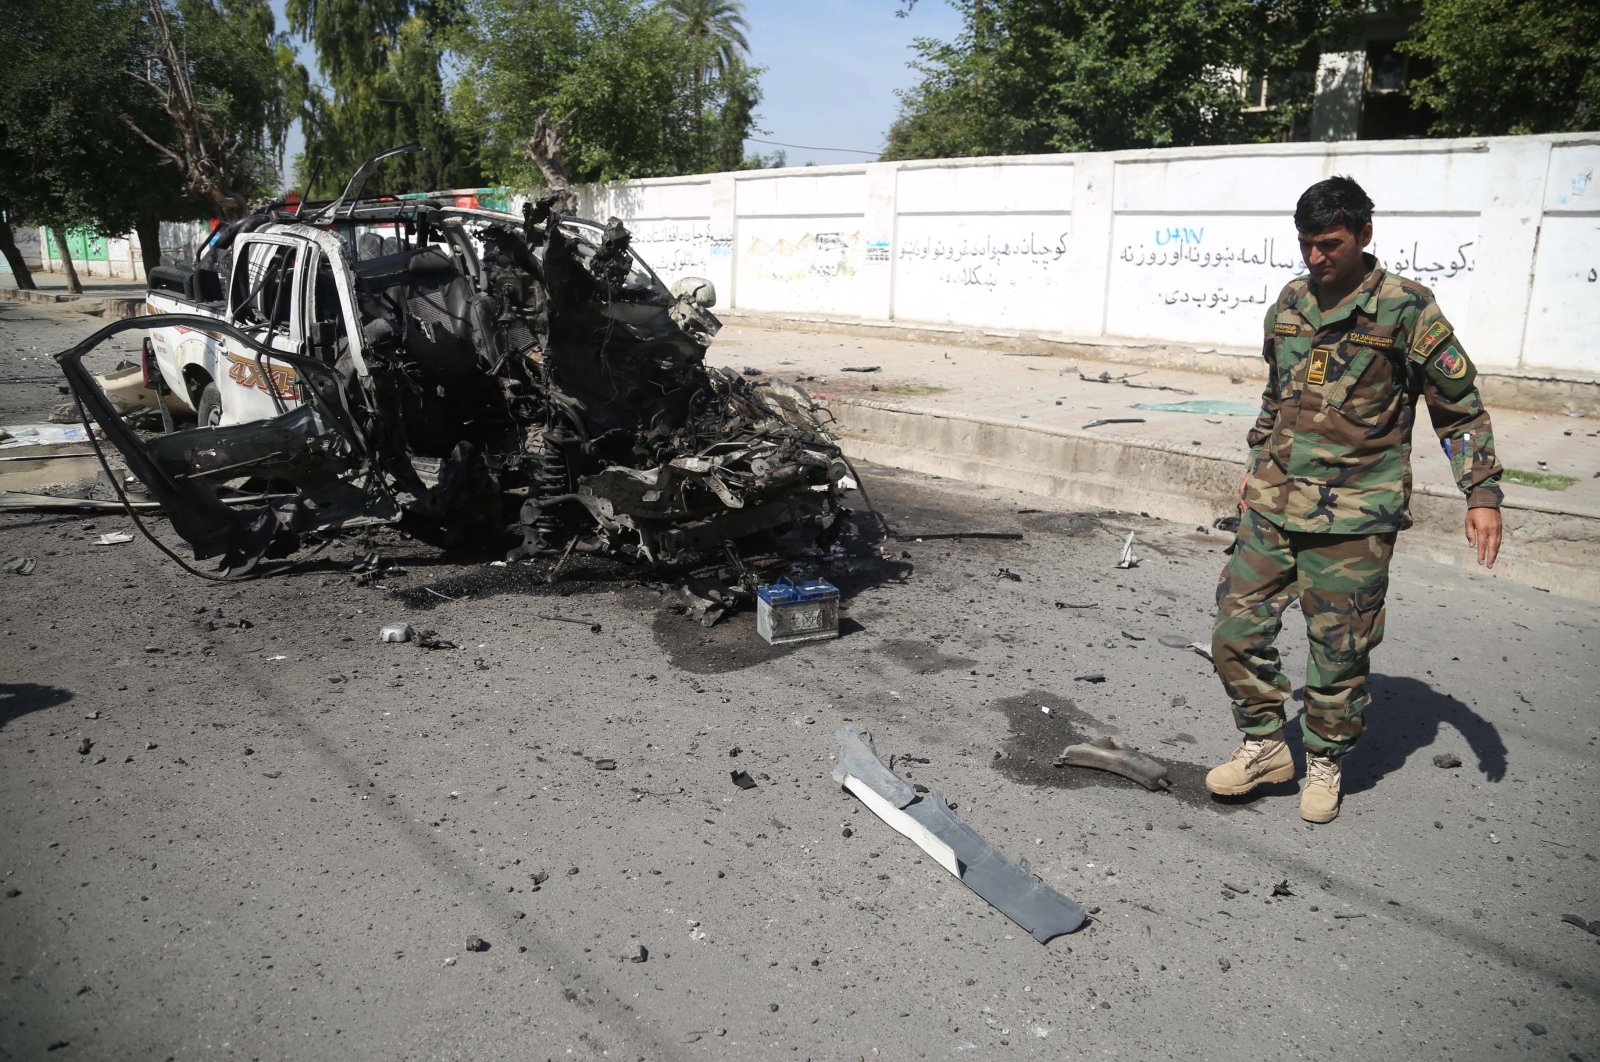 Afghan security officials inspect the scene of a bomb blast that targeted a vehicle of the Afghan National Army, in Jalalabad, Afghanistan, April, 26, 2021. (EPA Photo)